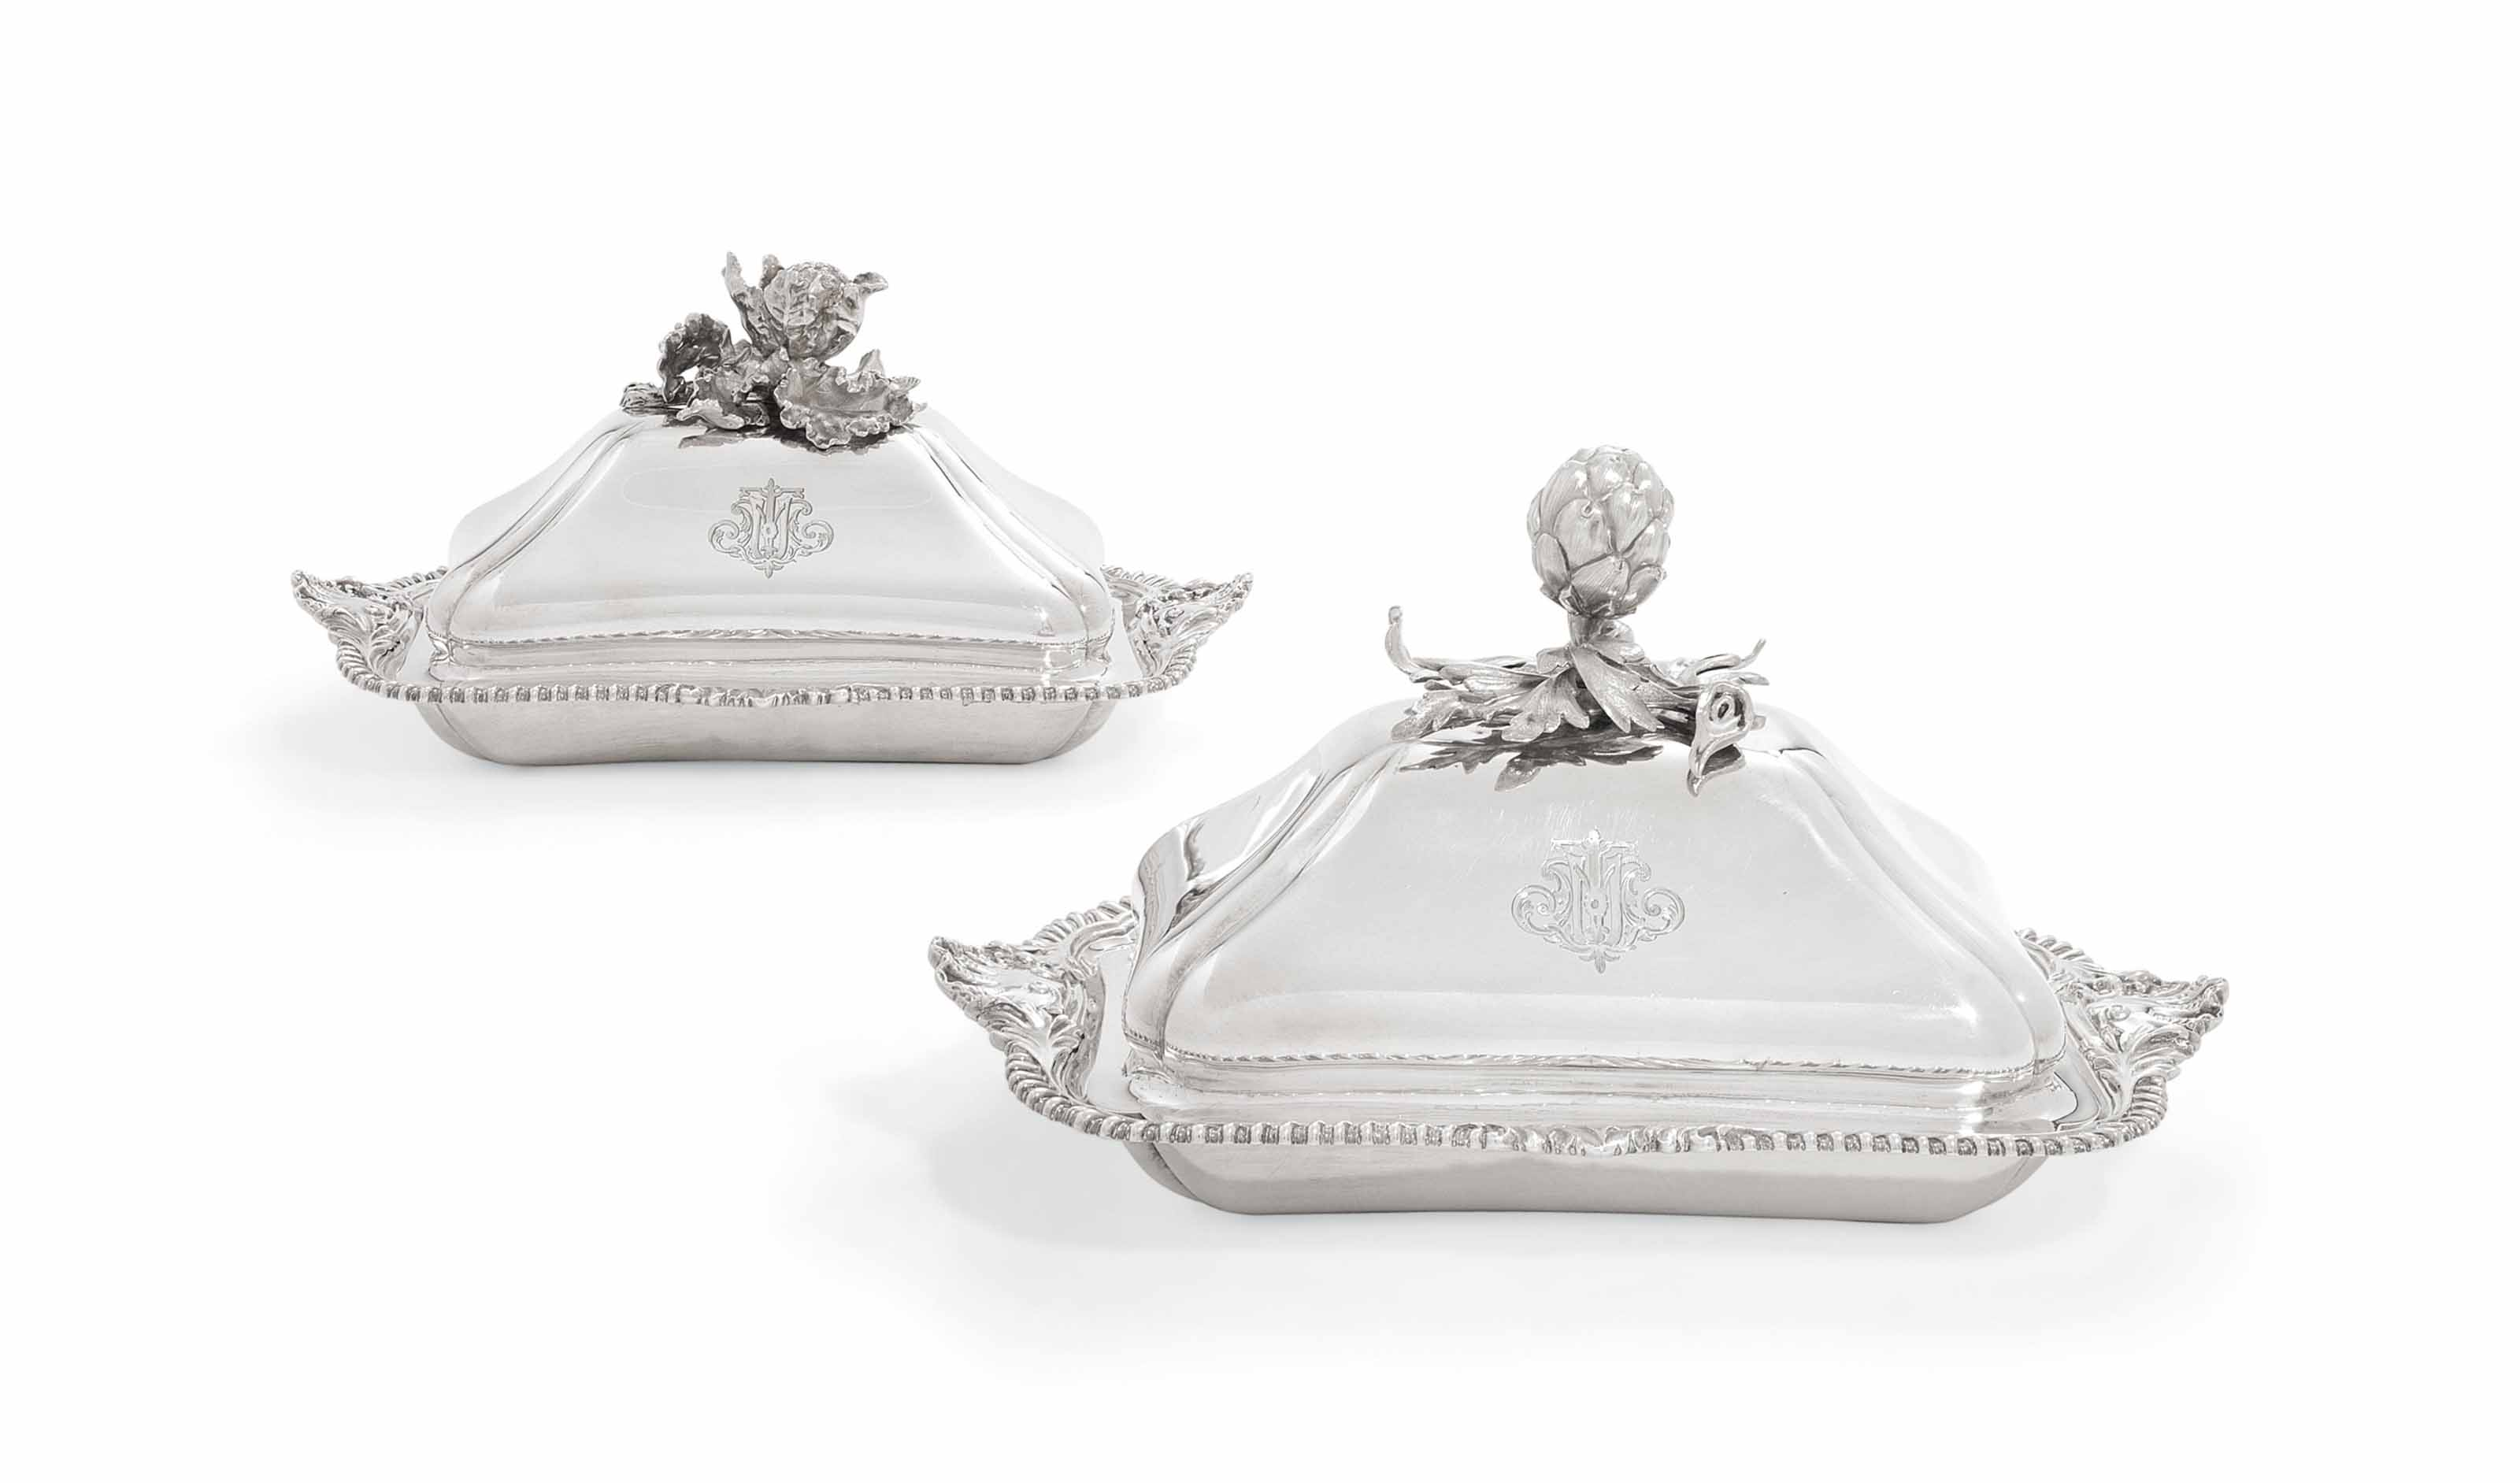 A PAIR OF VICTORIAN SILVER ENTREE-DISHES AND COVERS